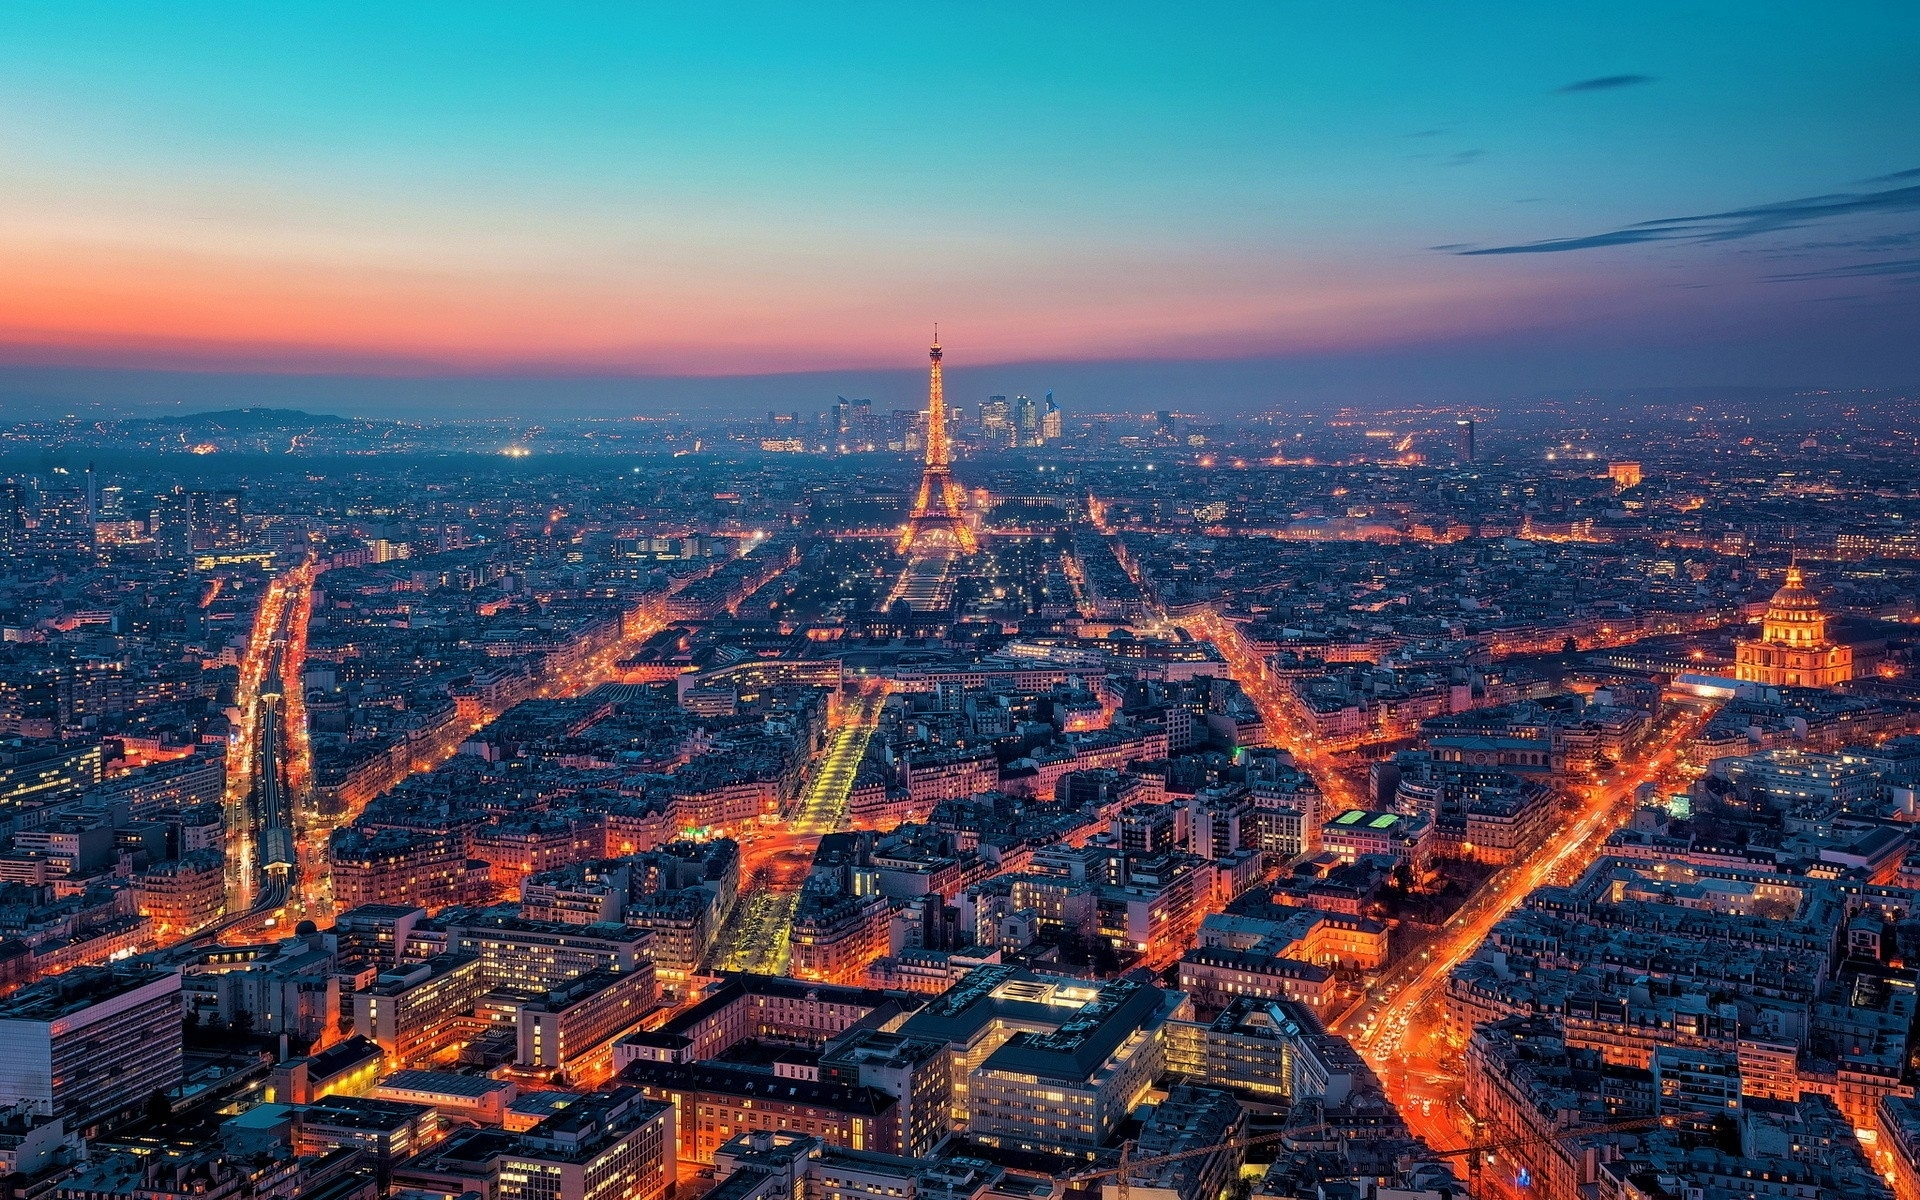 Horizon Night Lights Paris Wallpapers Horizon Night Lights Paris Stock Photos